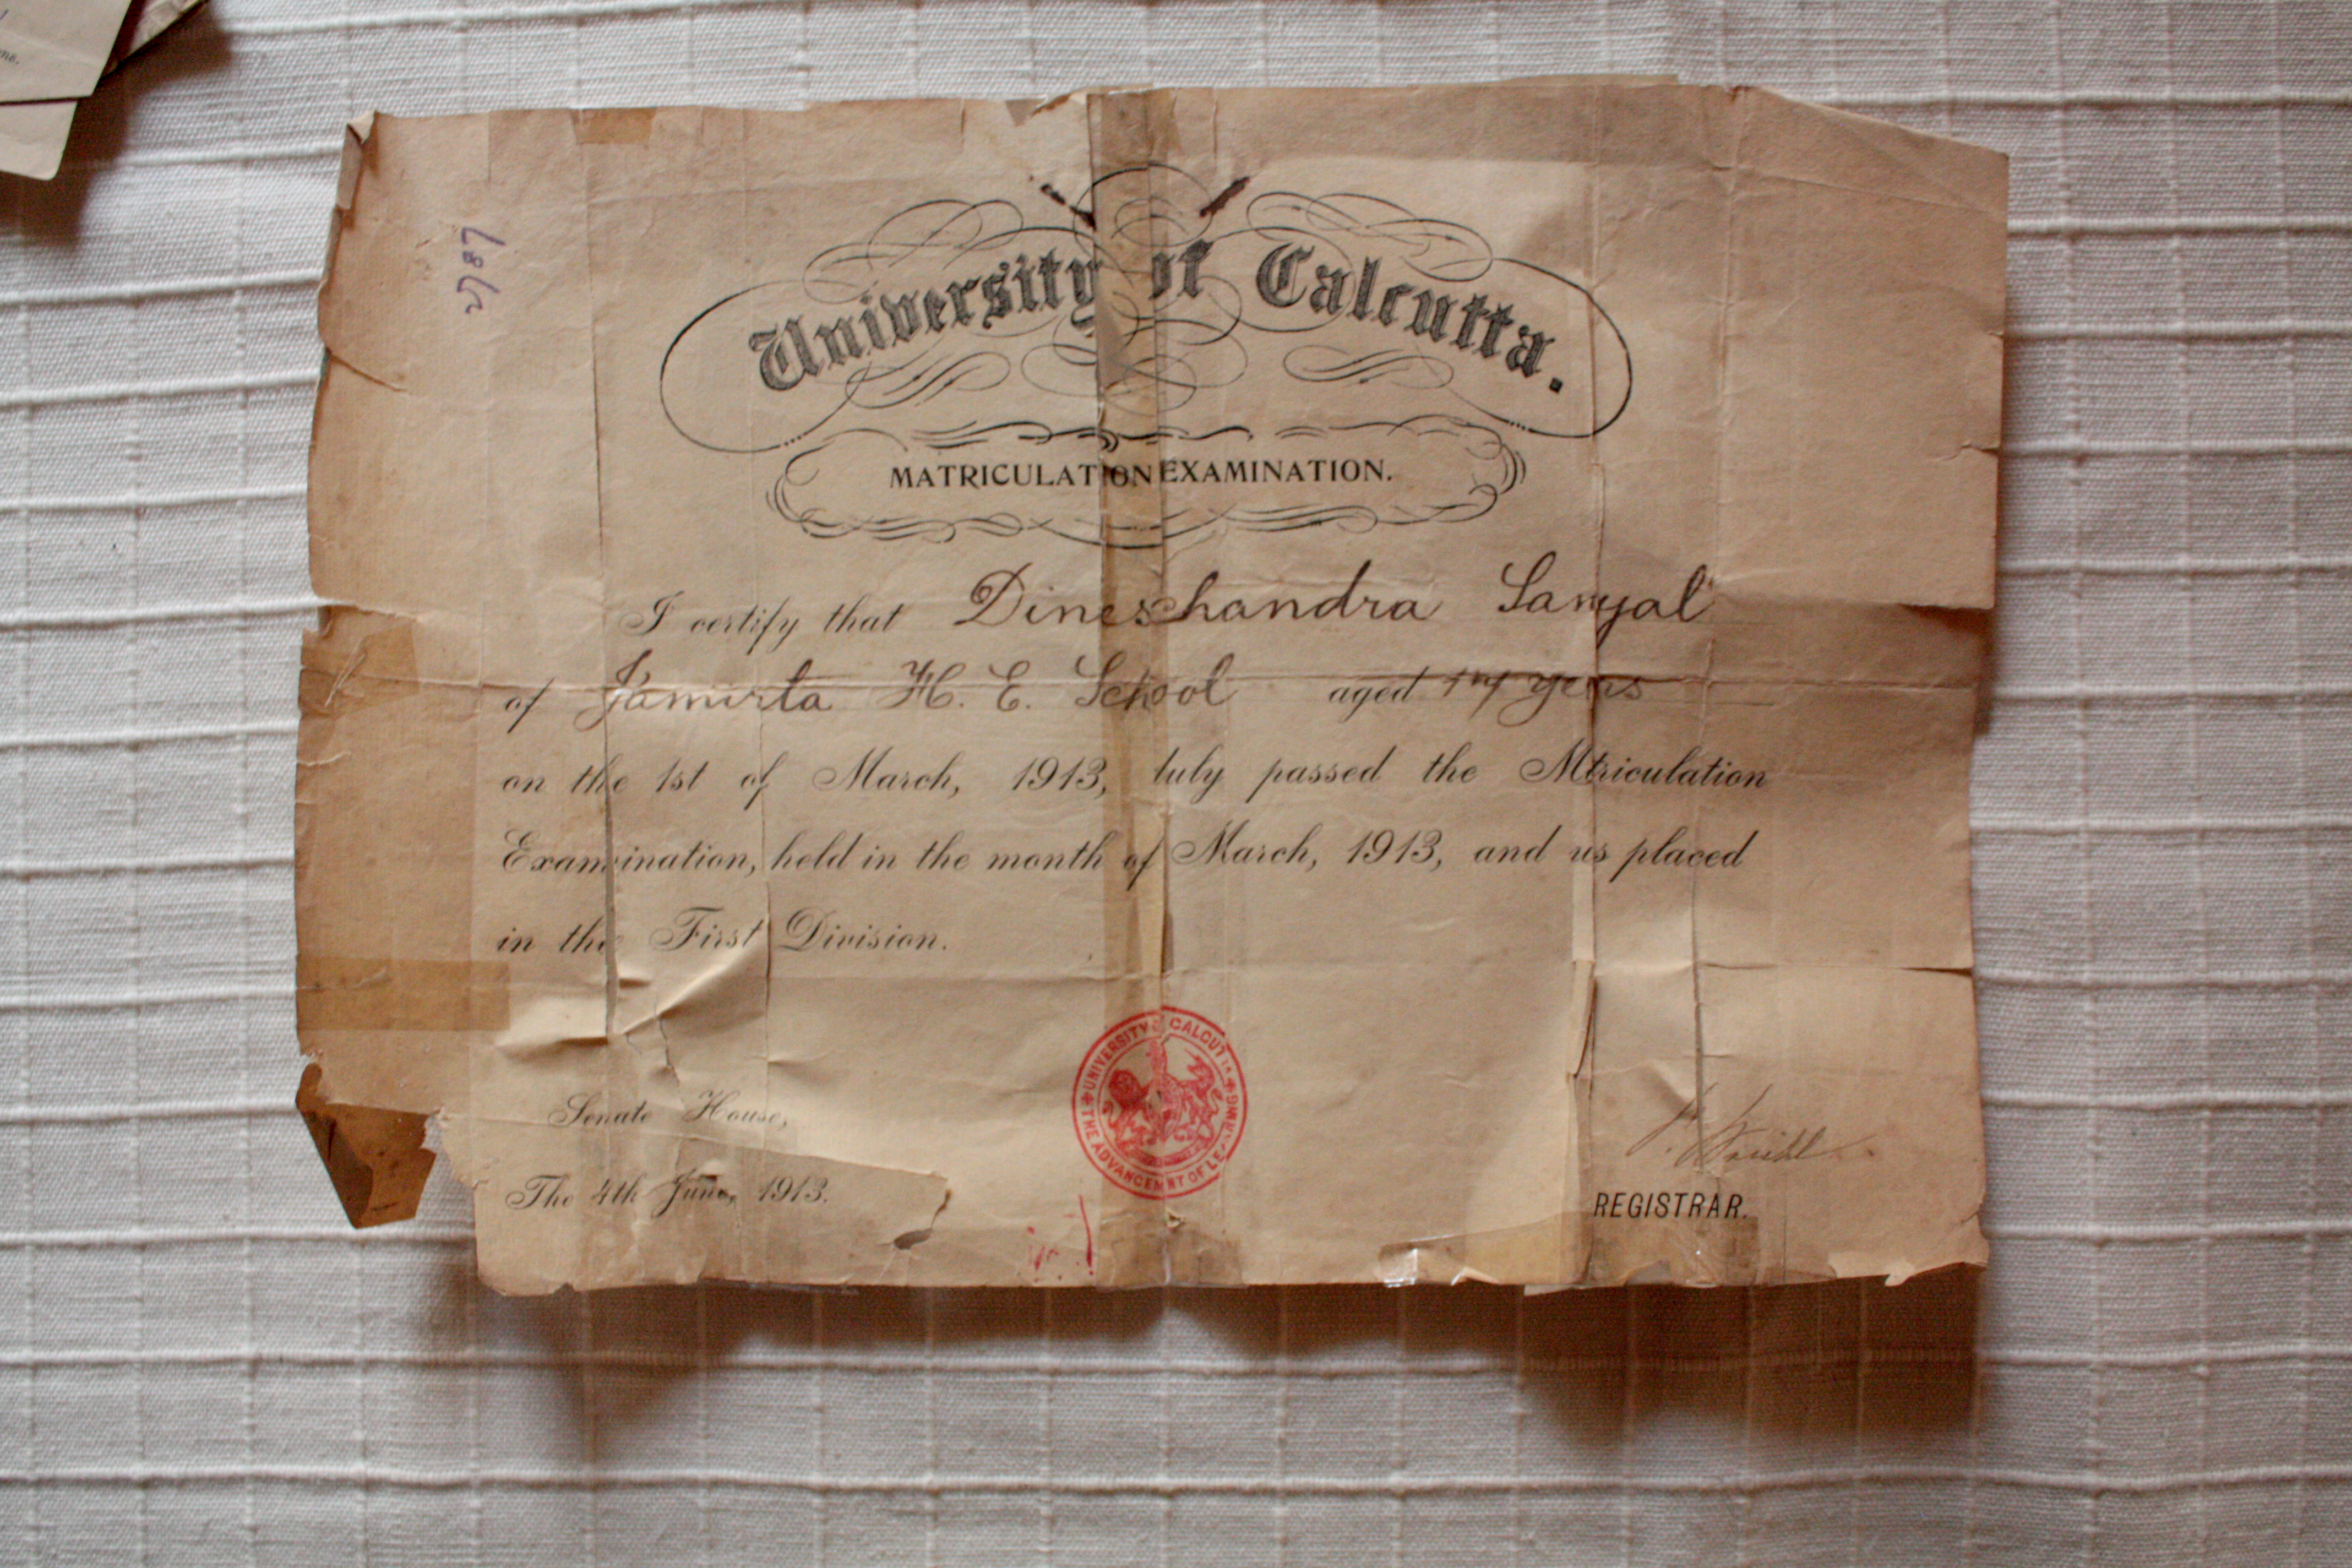 Sunil Chandra Sanyal_father's matriculation certificate from Calcutta University, 1913